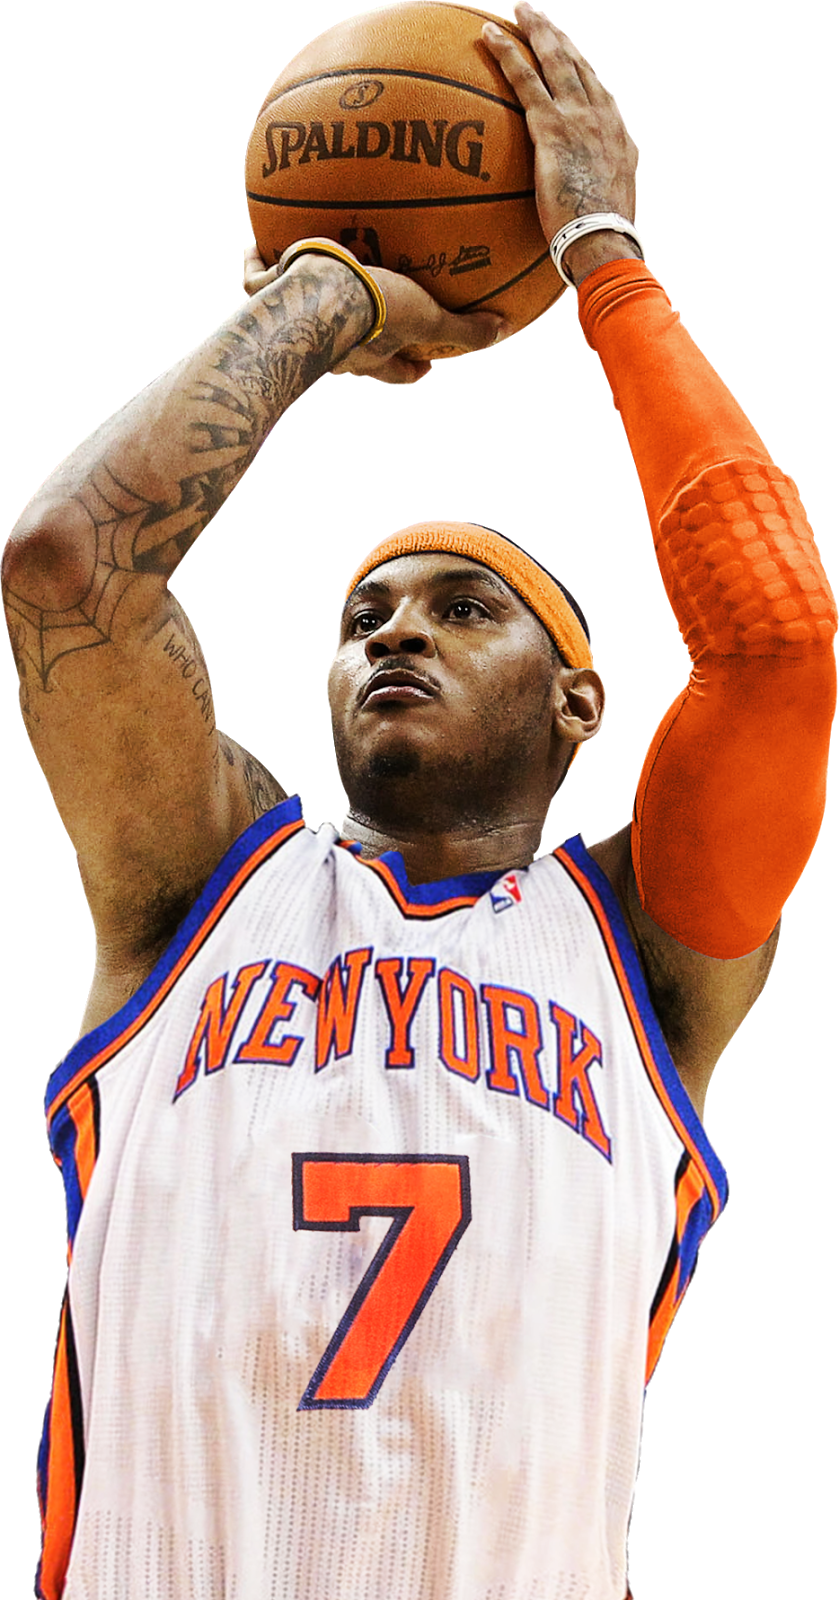 Thekongblog carmelo anthony sway in the morning for 4 designhotel anthony s